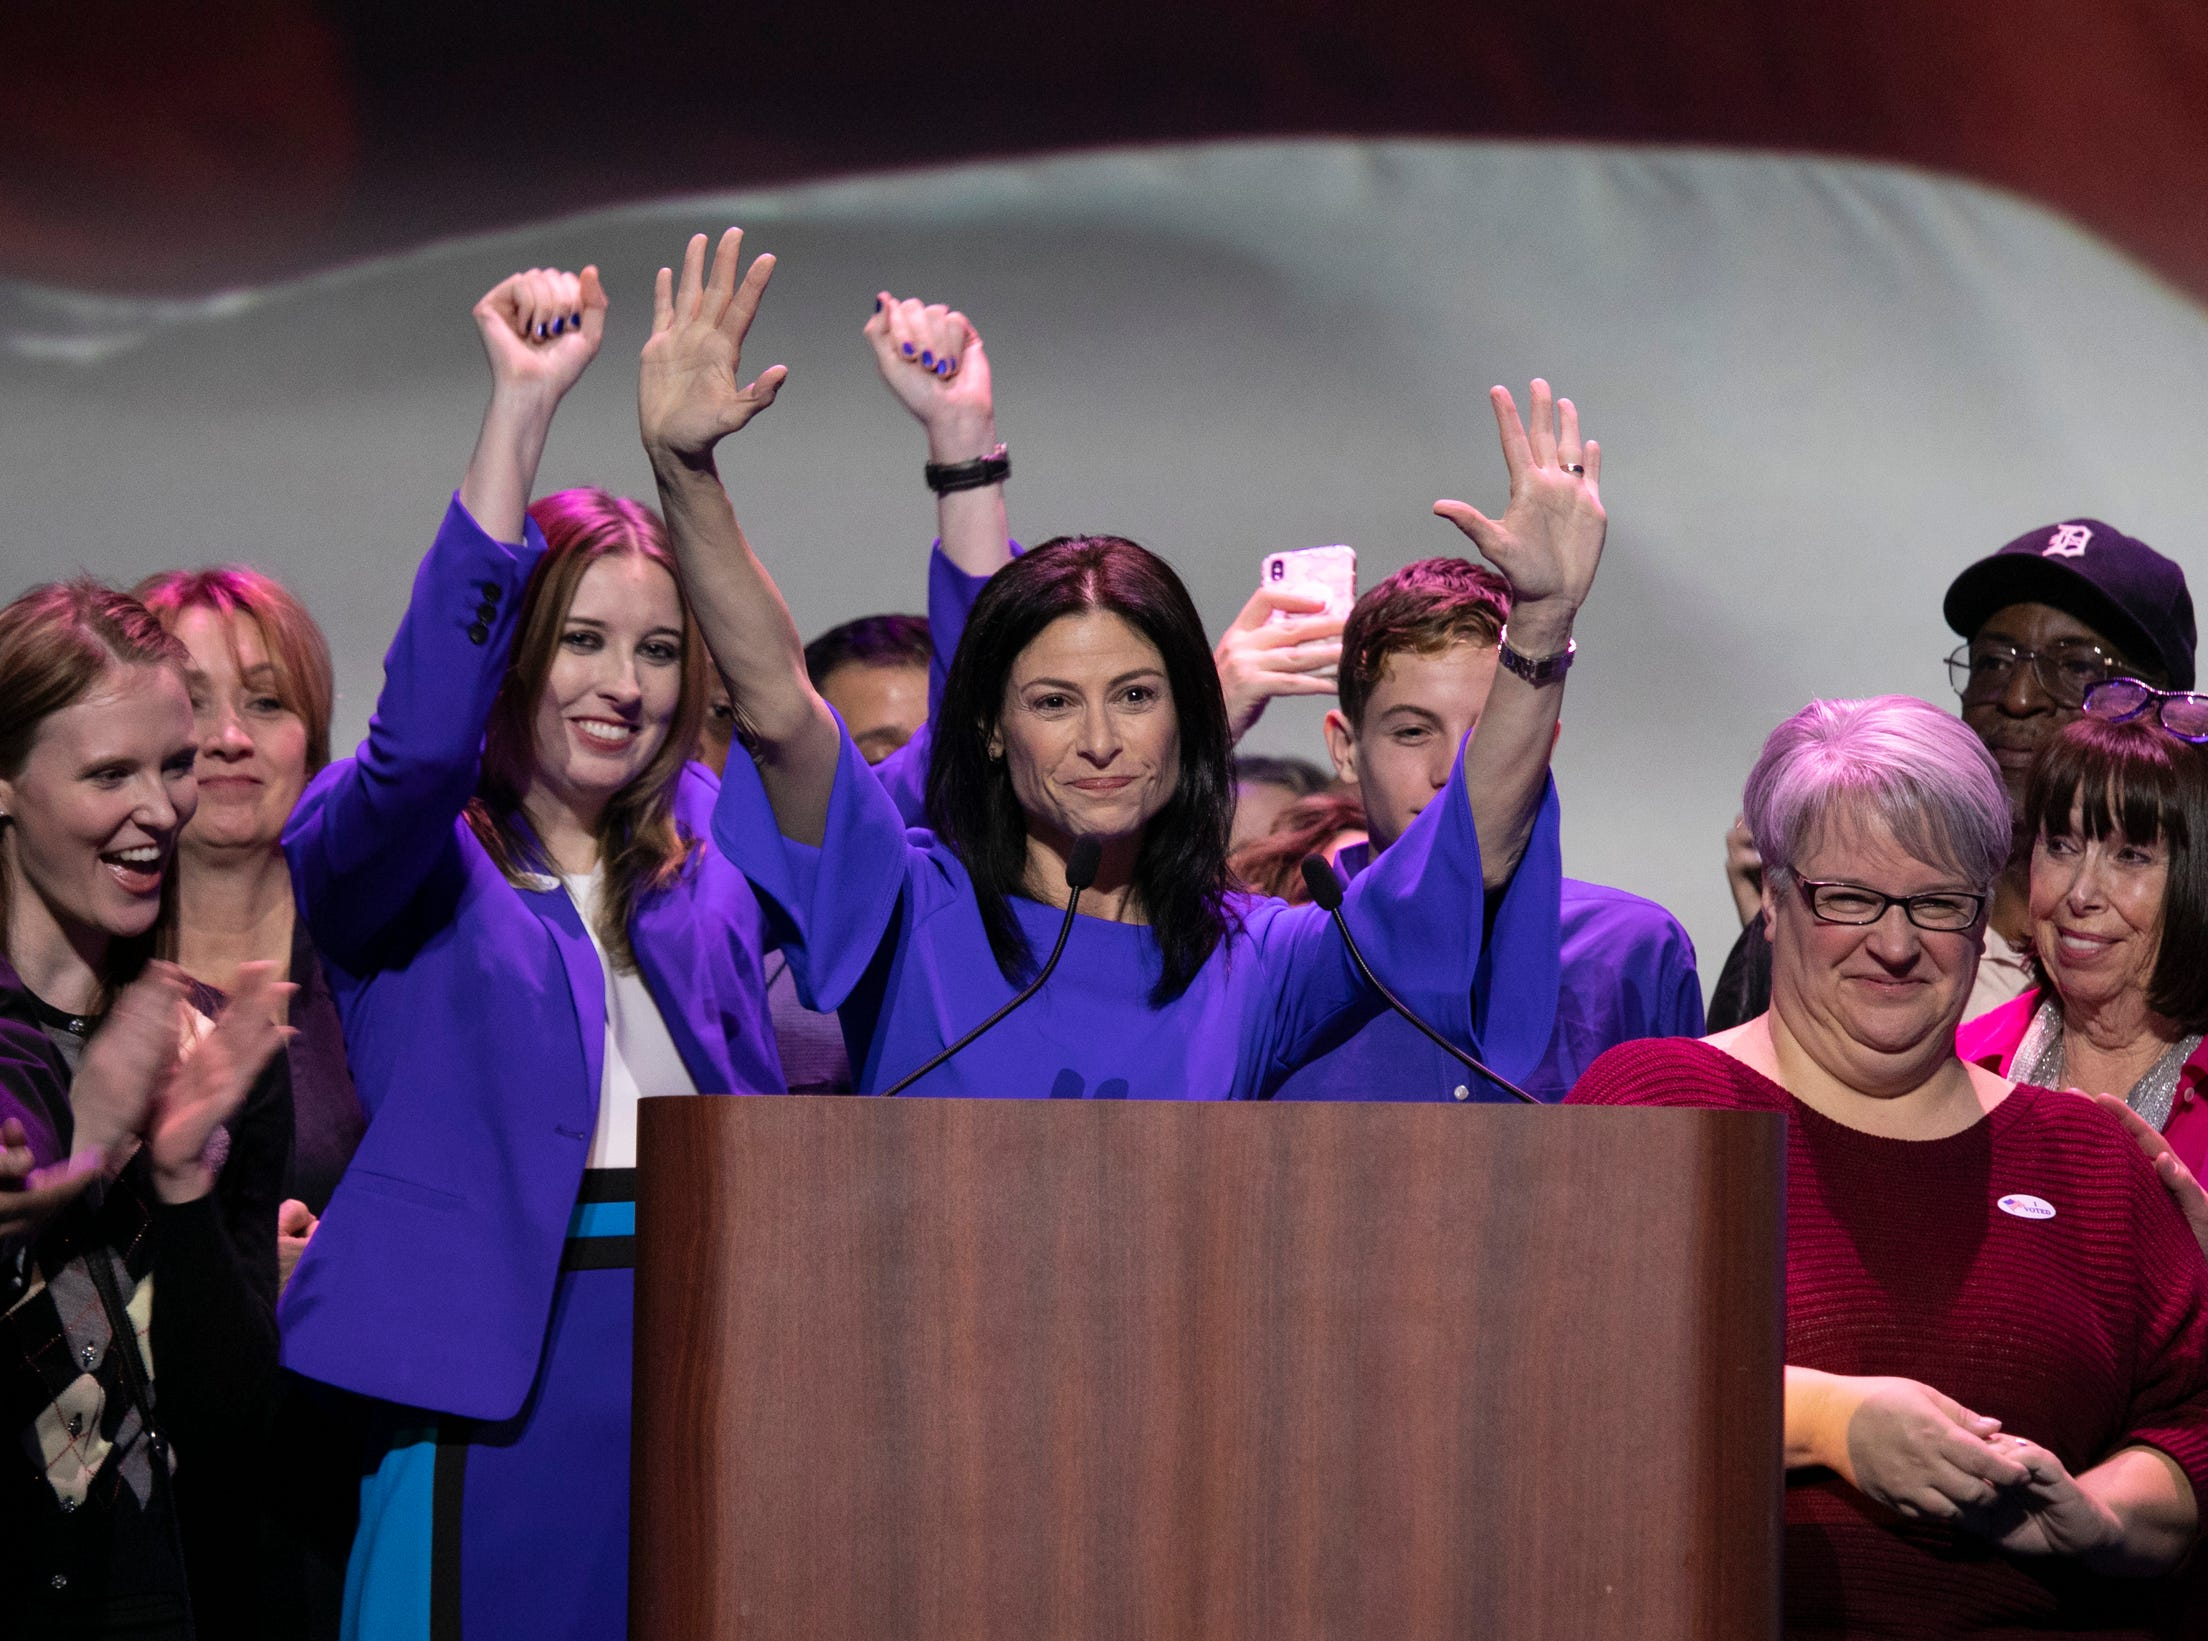 Dana Nessel, who is running for Michigan Attorney General speaks to supporters during the watch party held at the Sound Board in the MotorCity Casino in Detroit Tuesday, Nov. 6, 2018.